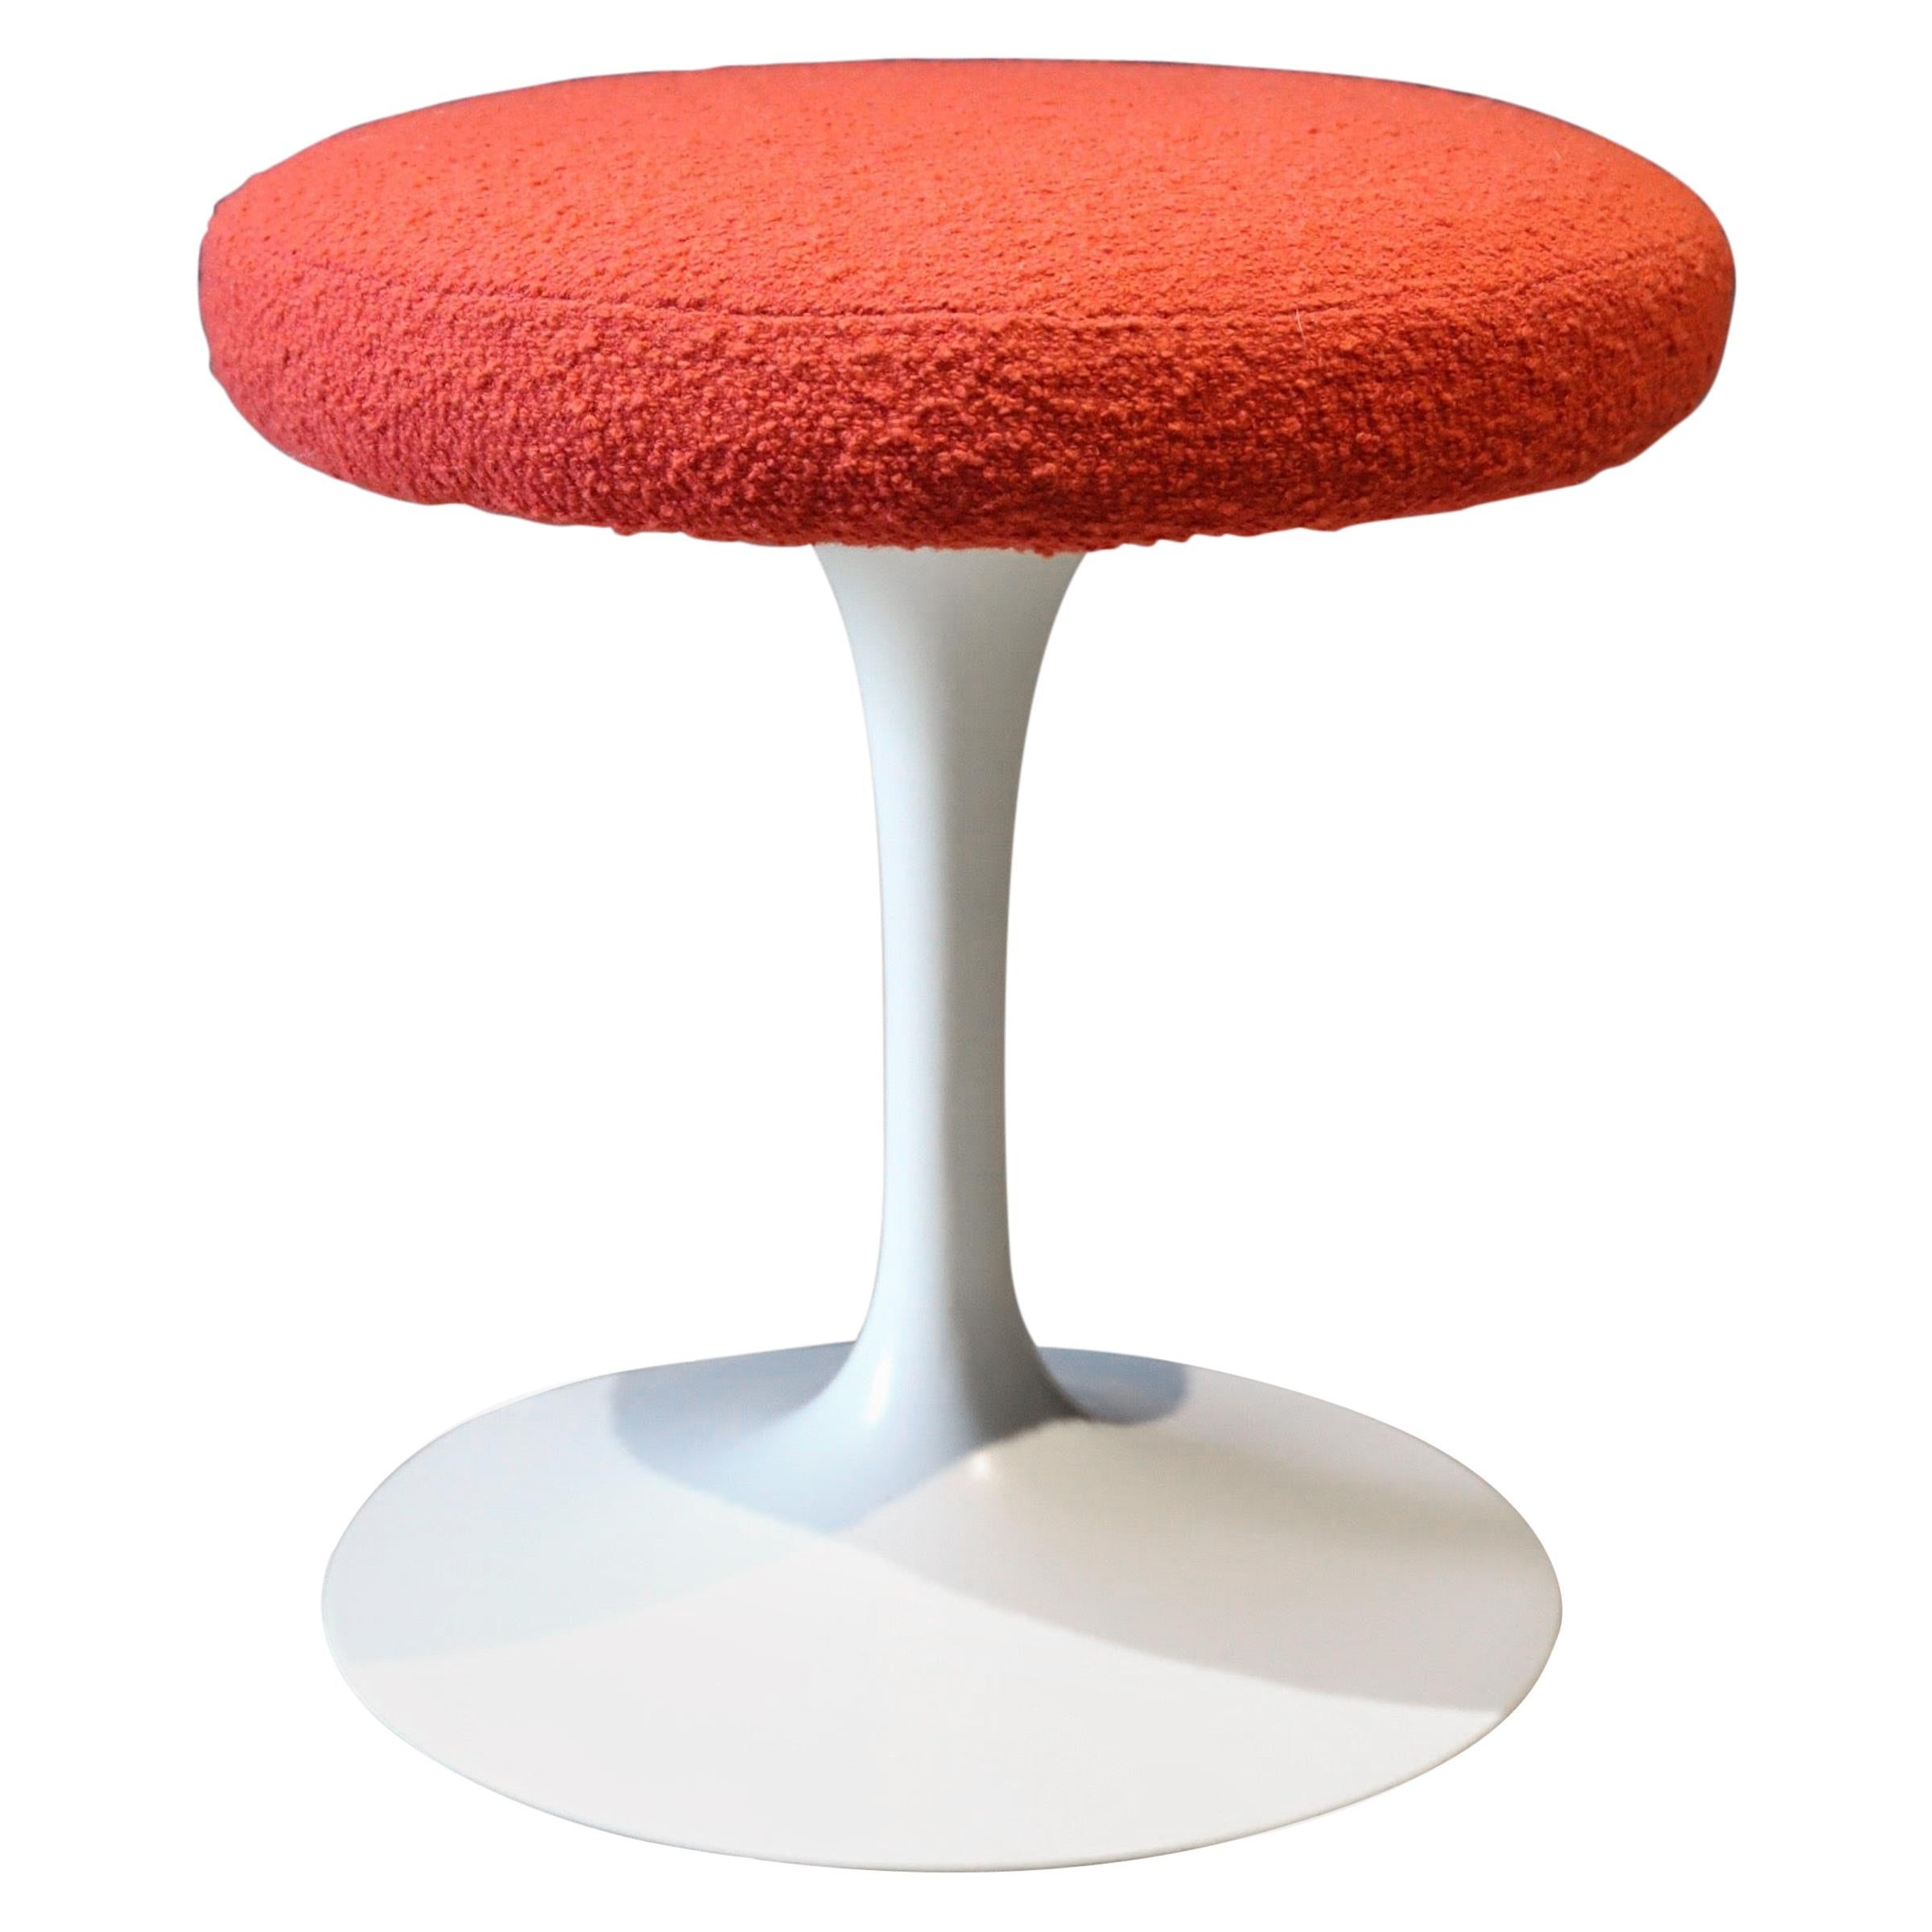 Stool Ottoman by Eero Saarinen for Knoll